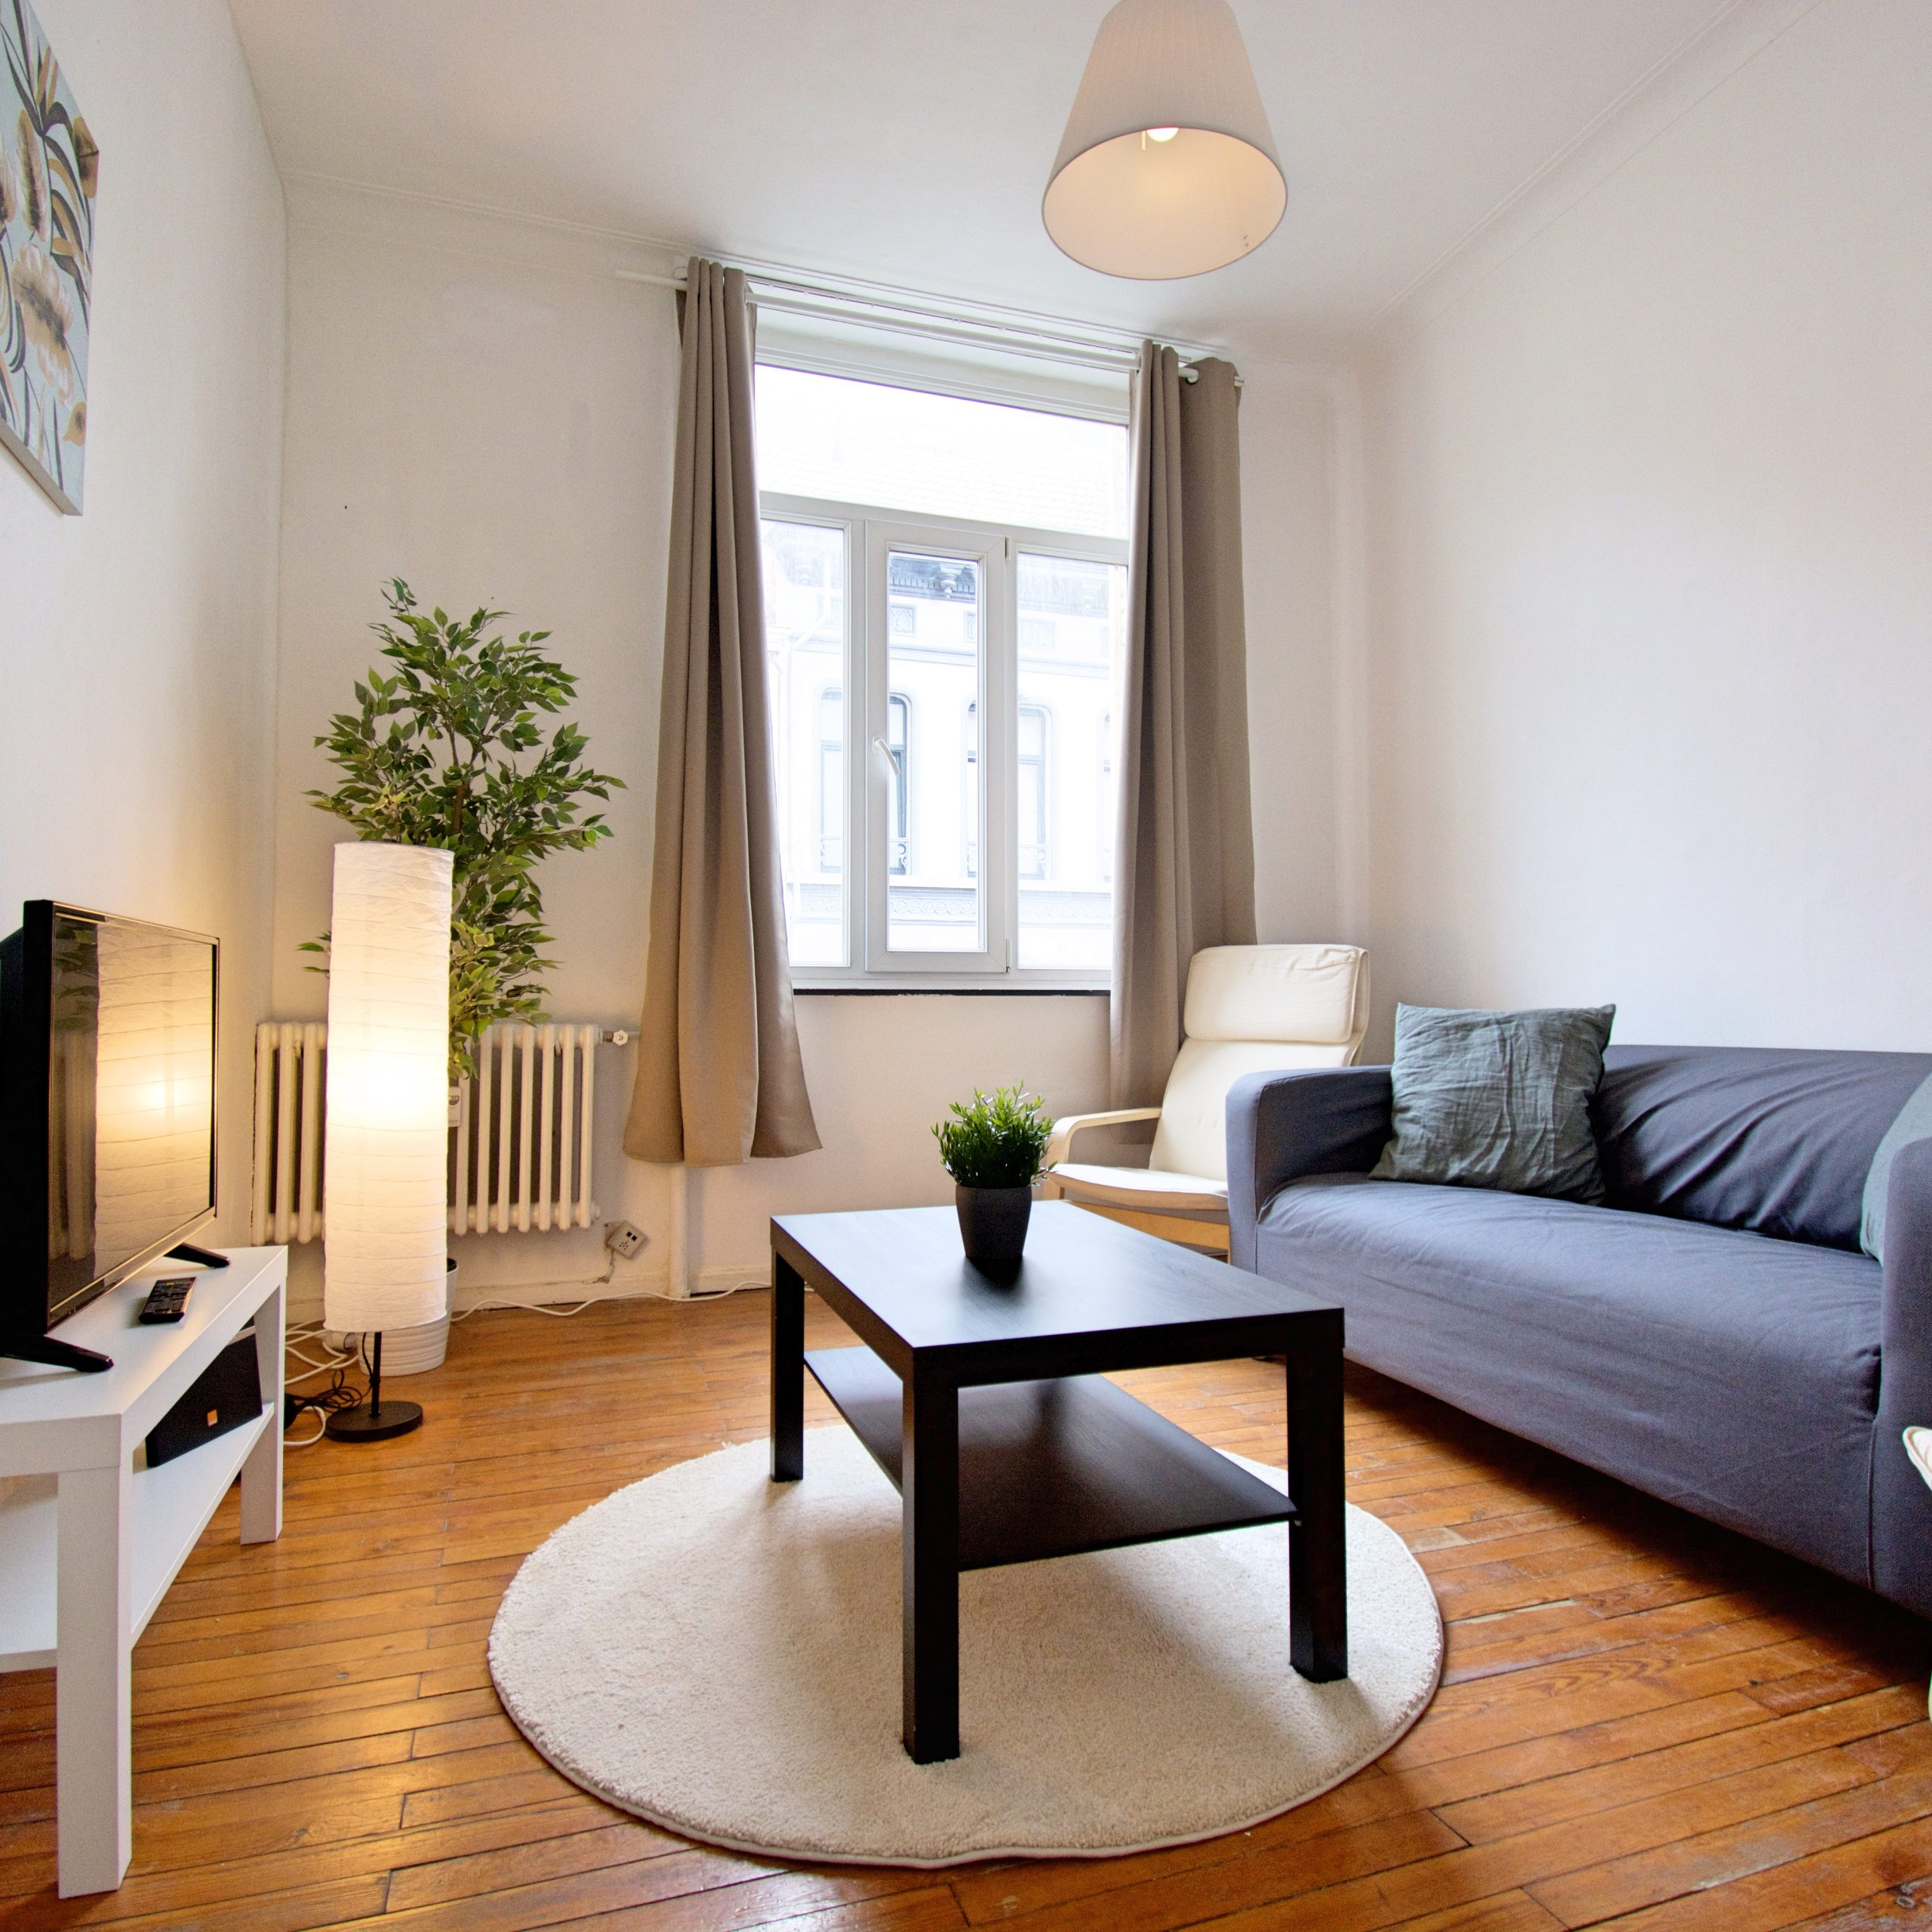 Rental apartment for workers in Antwerp